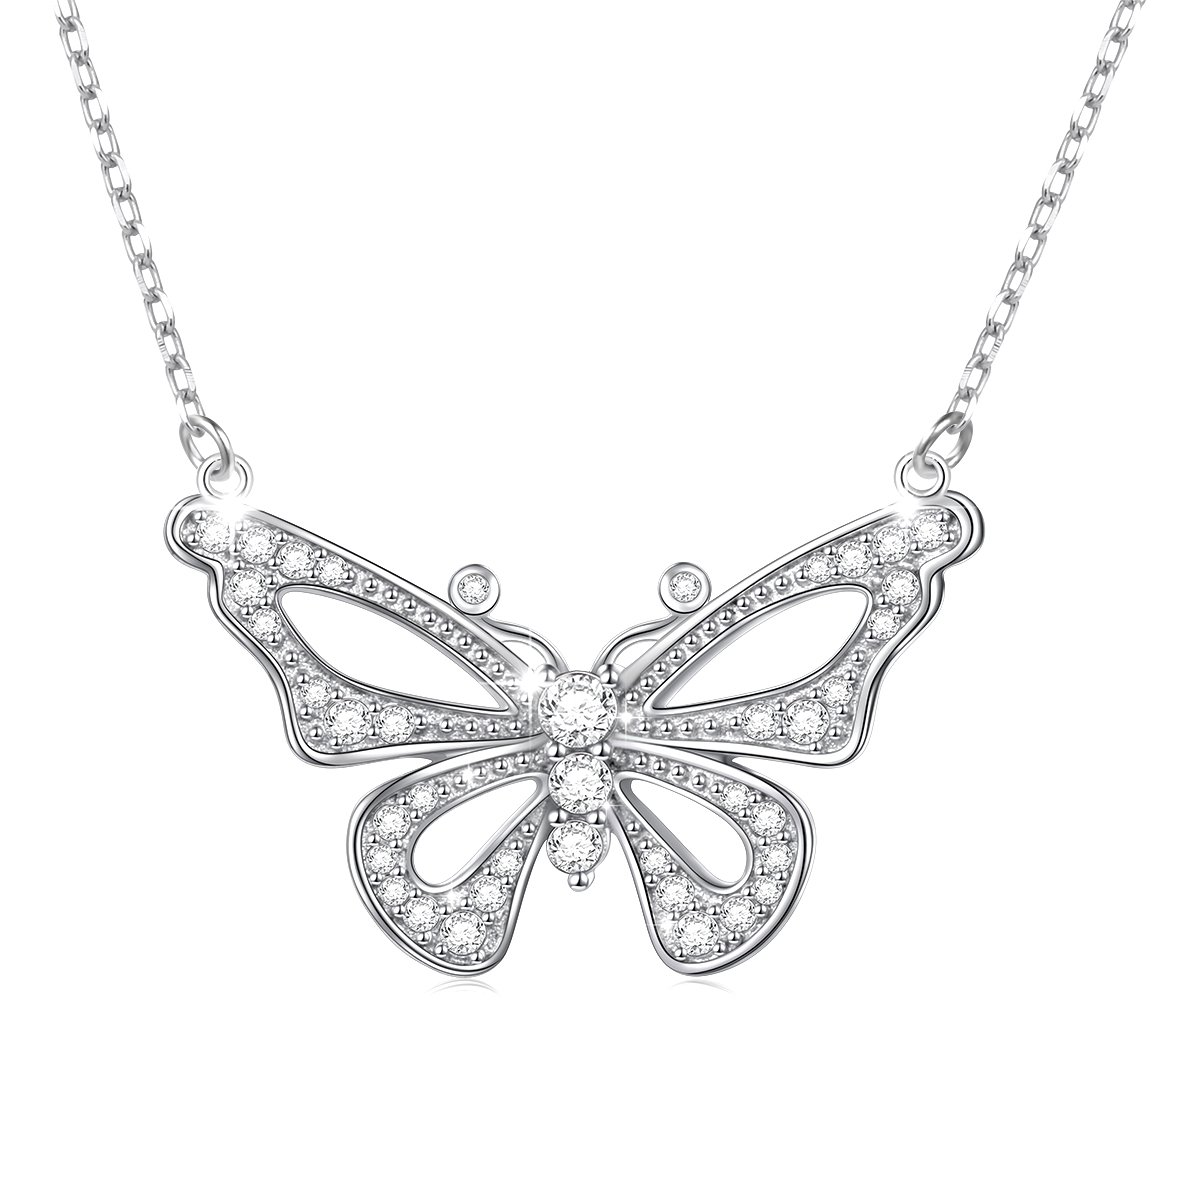 LINLIN FINE JEWELRY 925 Sterling Silver White Cubic Zirconia Butterfly in Heart Pendant Necklace Gift for Women Girls, 18'' (Butterfly) by LINLIN FINE JEWELRY (Image #1)